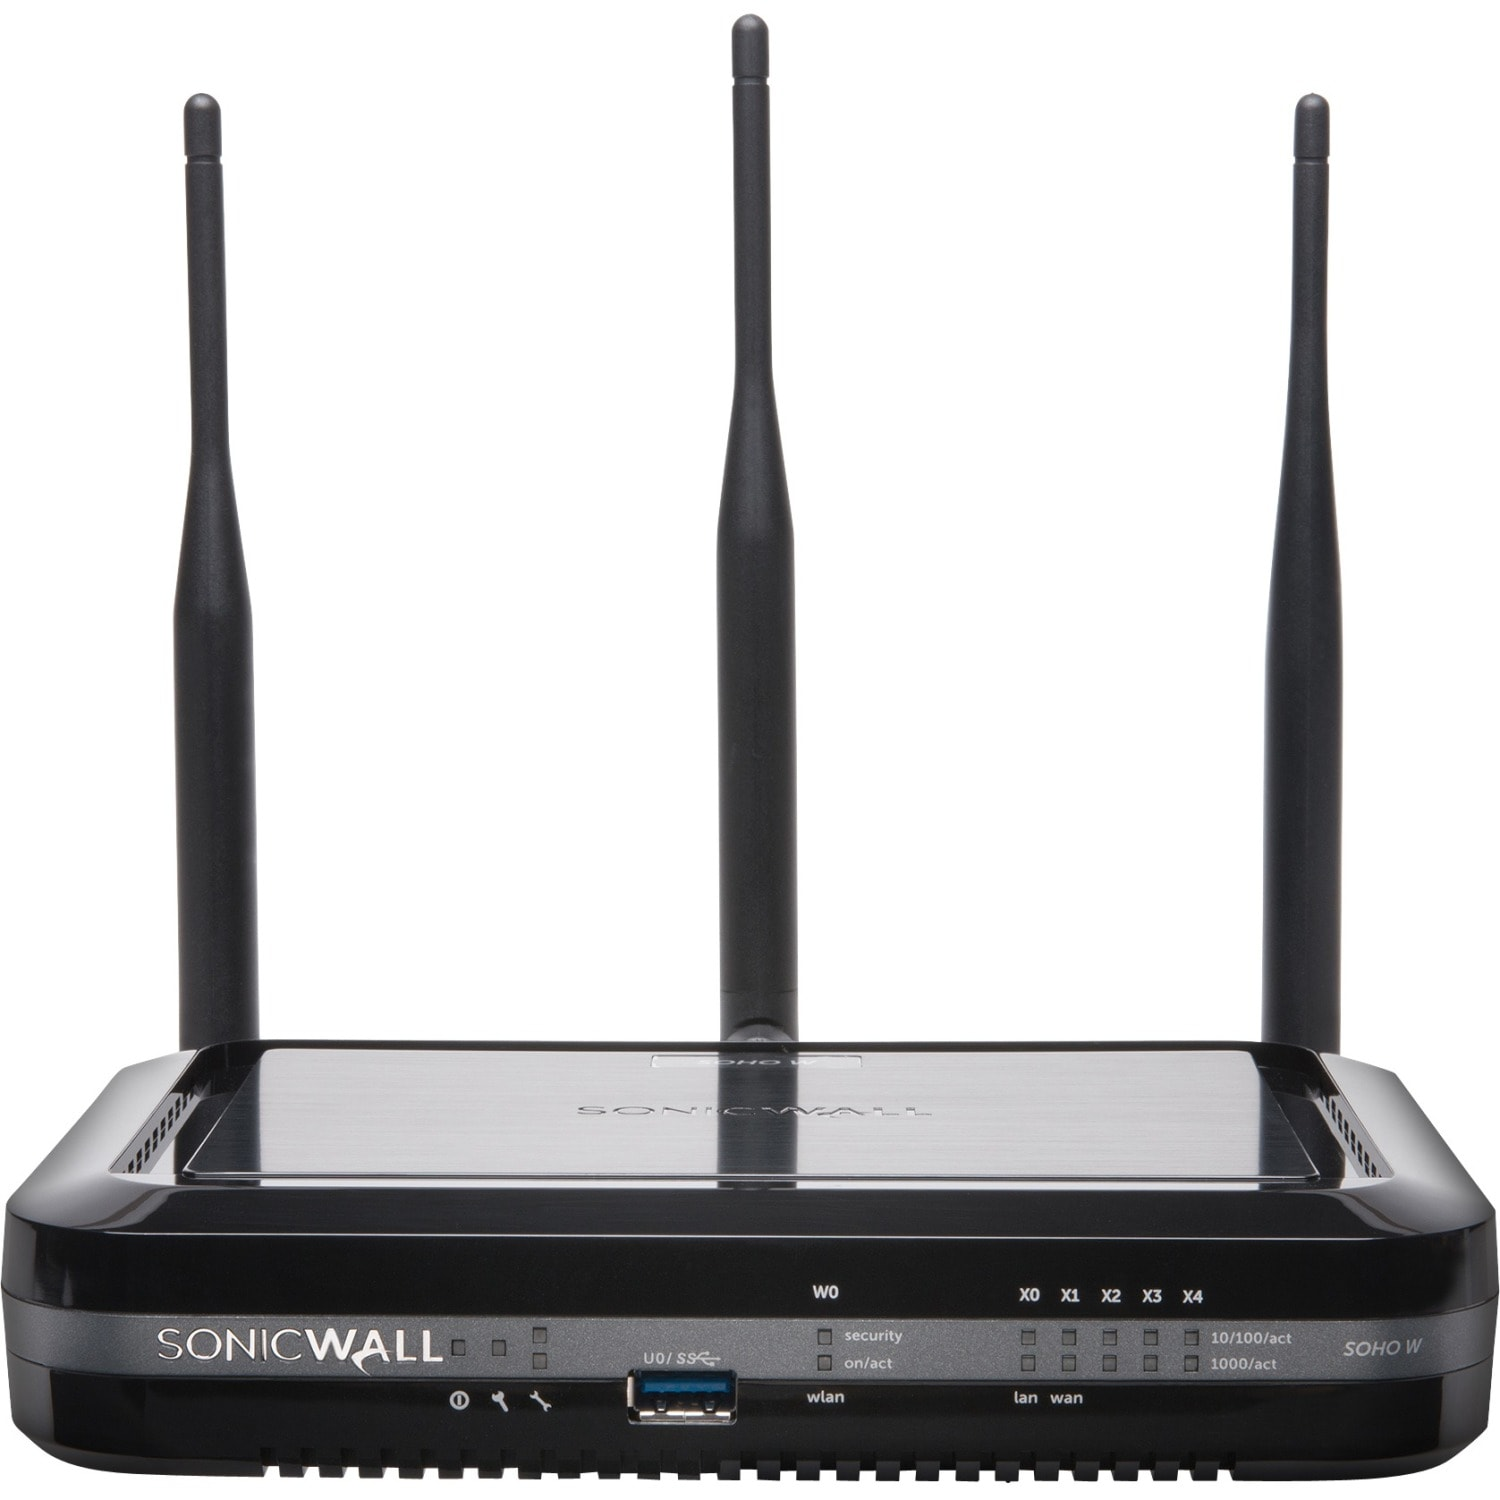 Buy SonicWall SOHO Network Security/Firewall Appliance - 3 Year